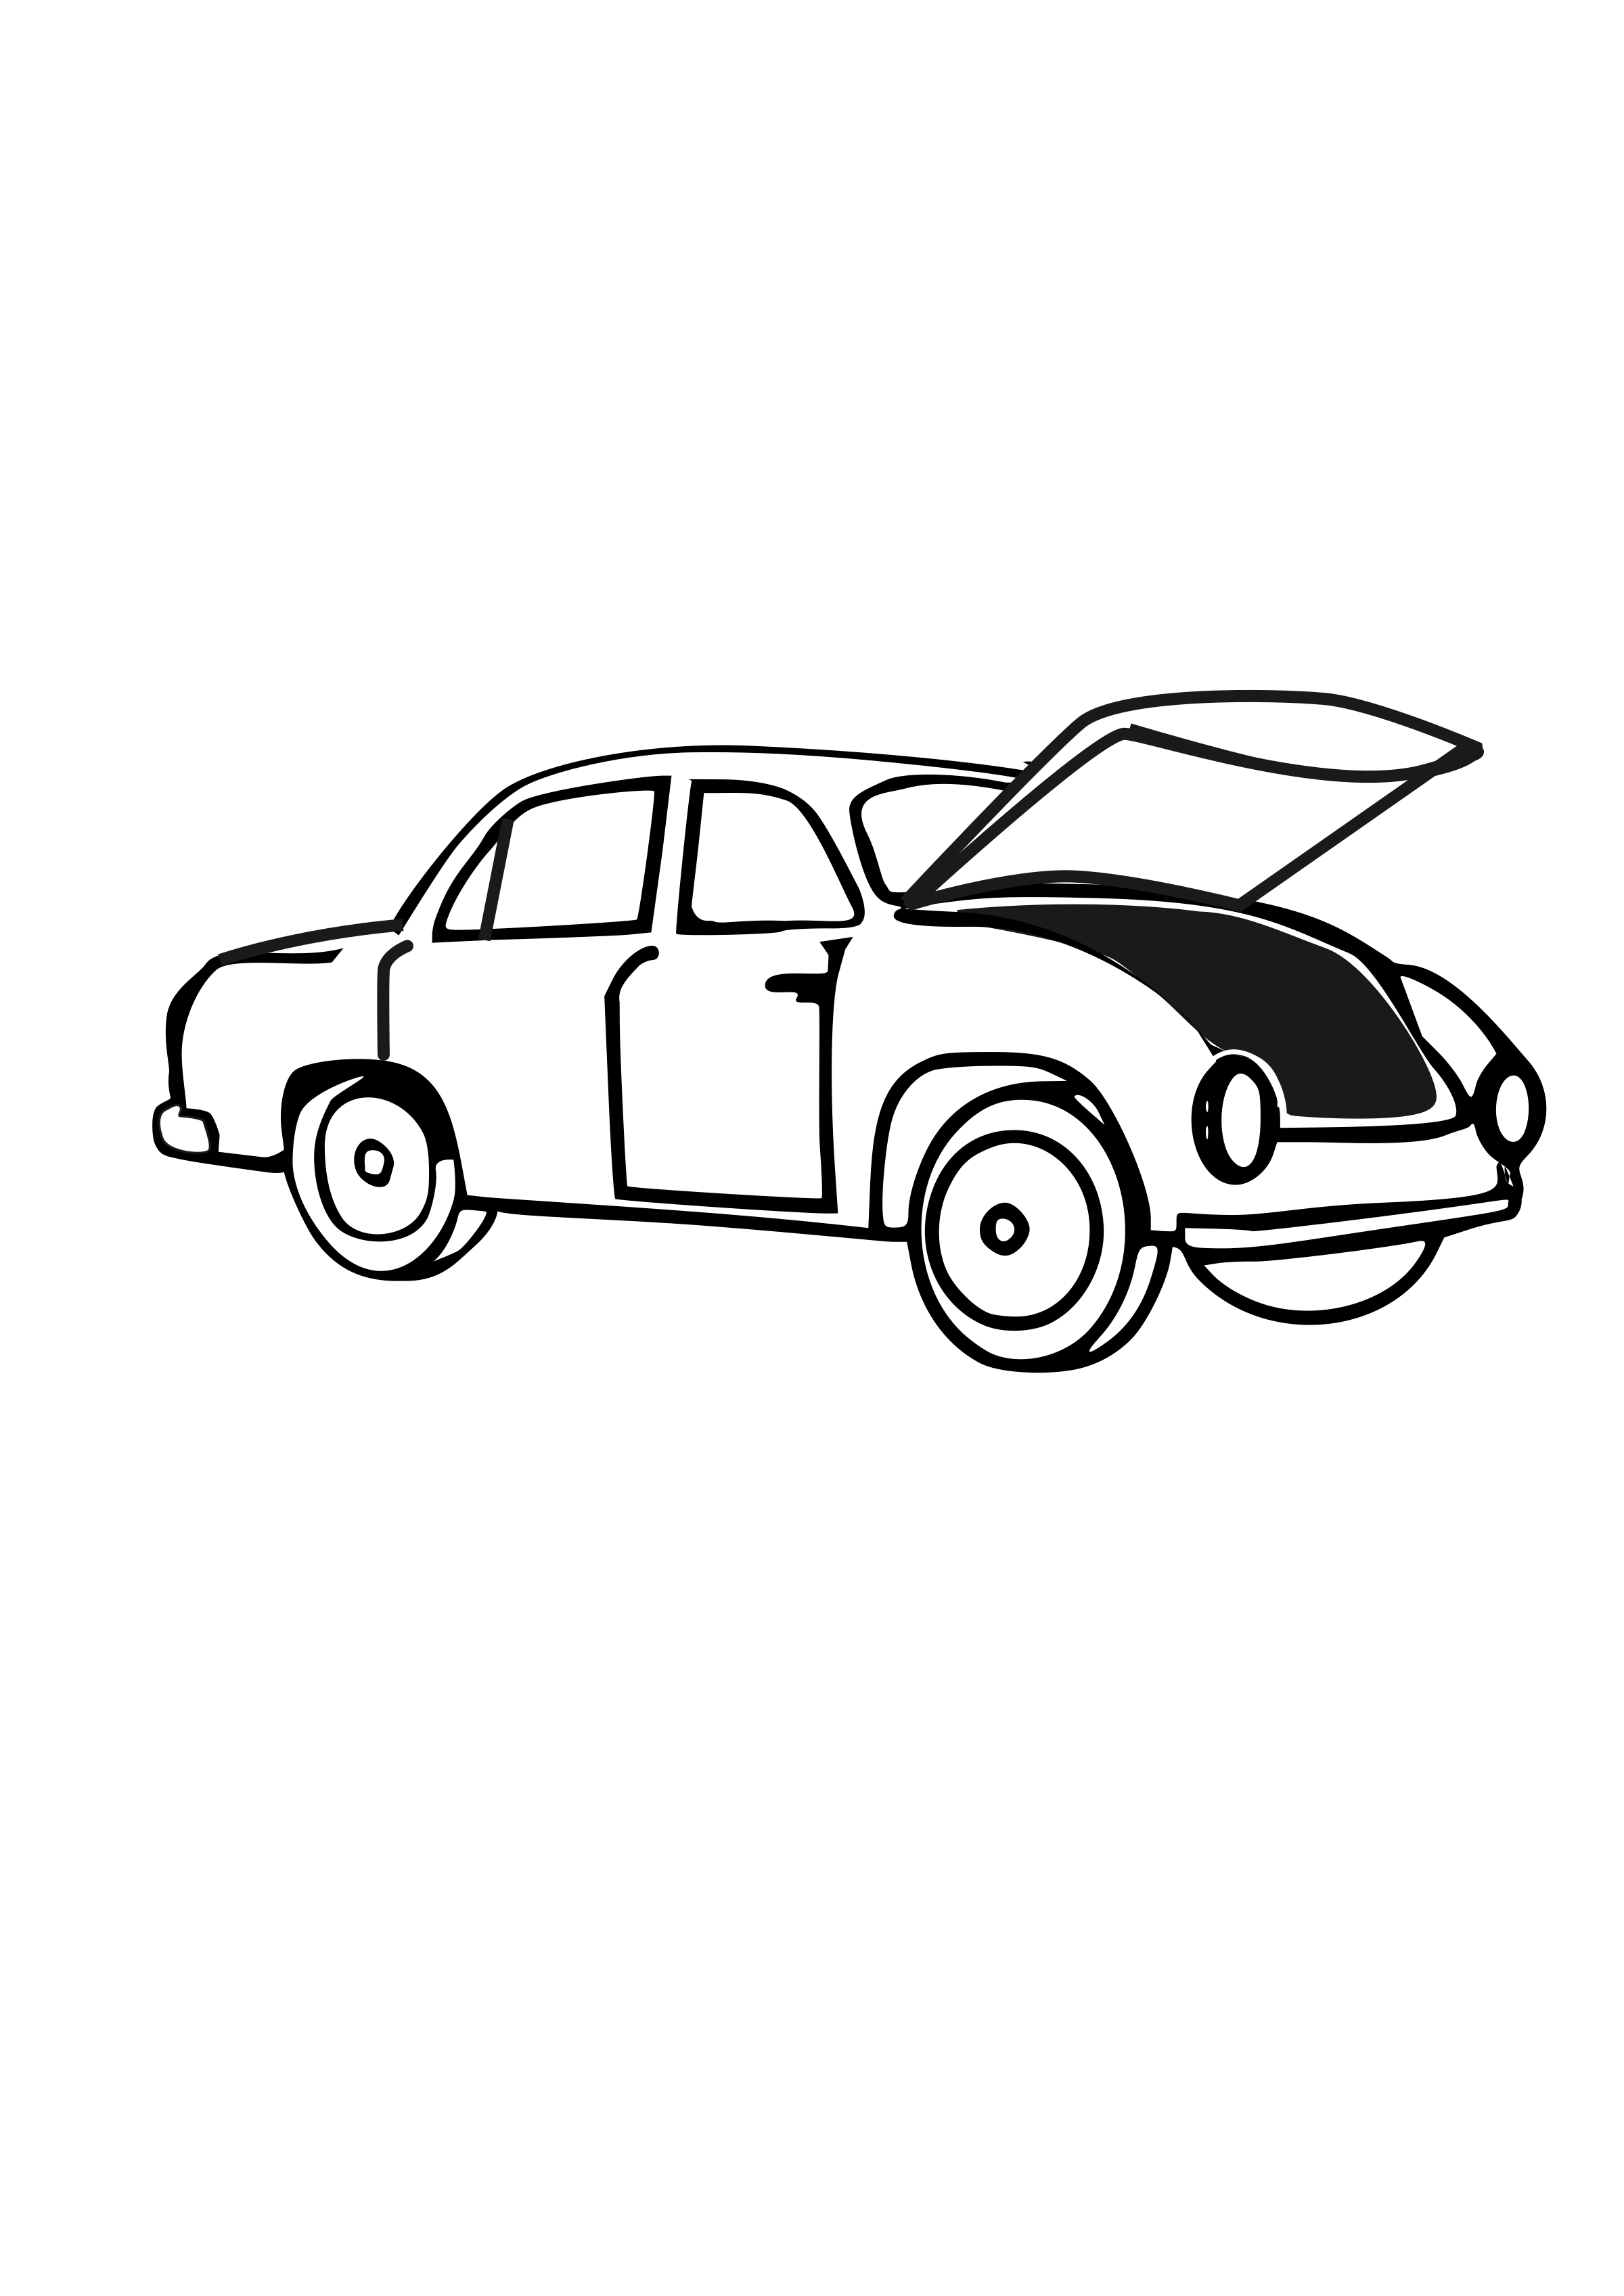 Car with hood open clipart picture black and white Clipart - Car with open trunk picture black and white